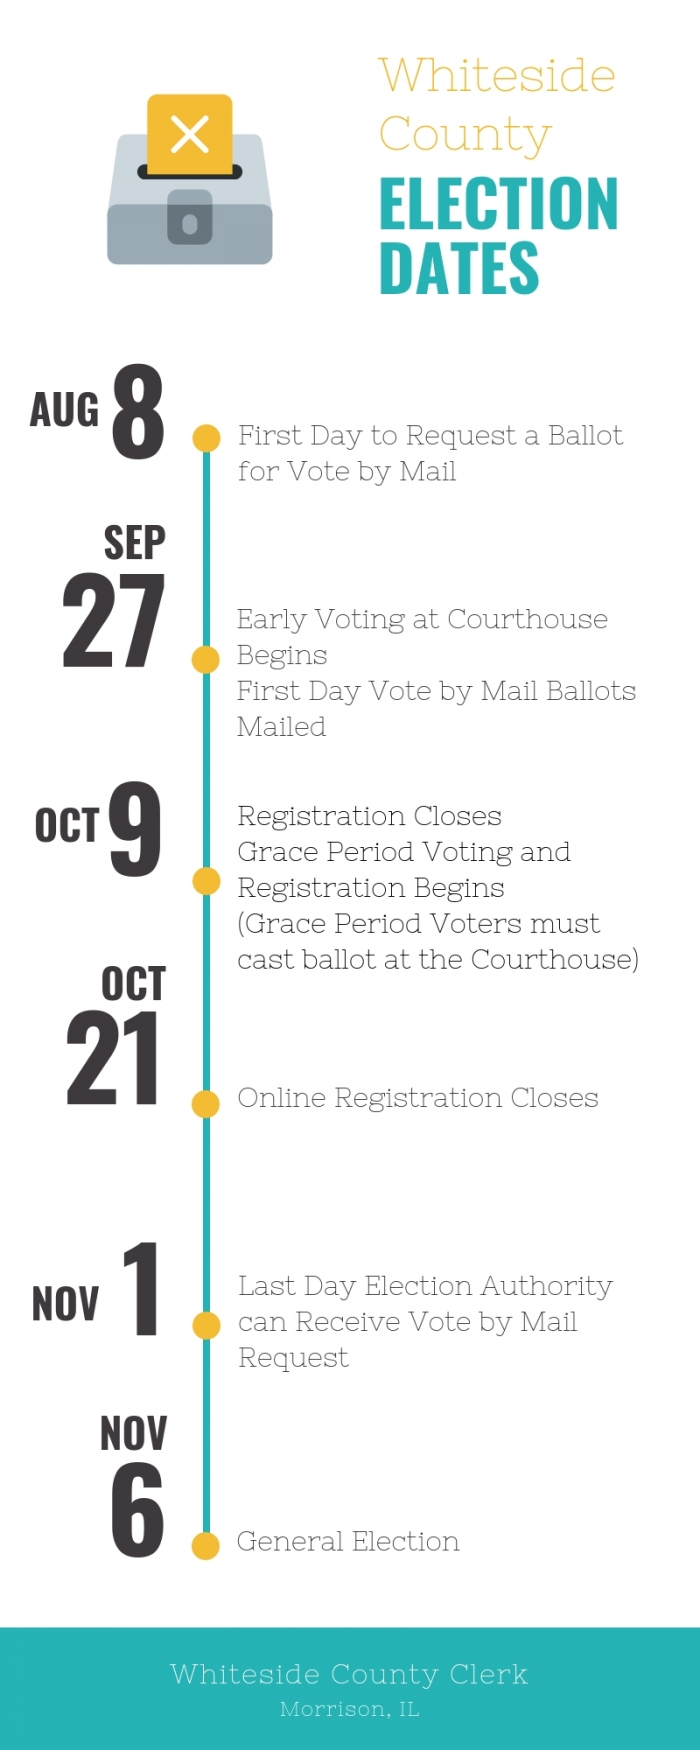 Important Election Dates & Information